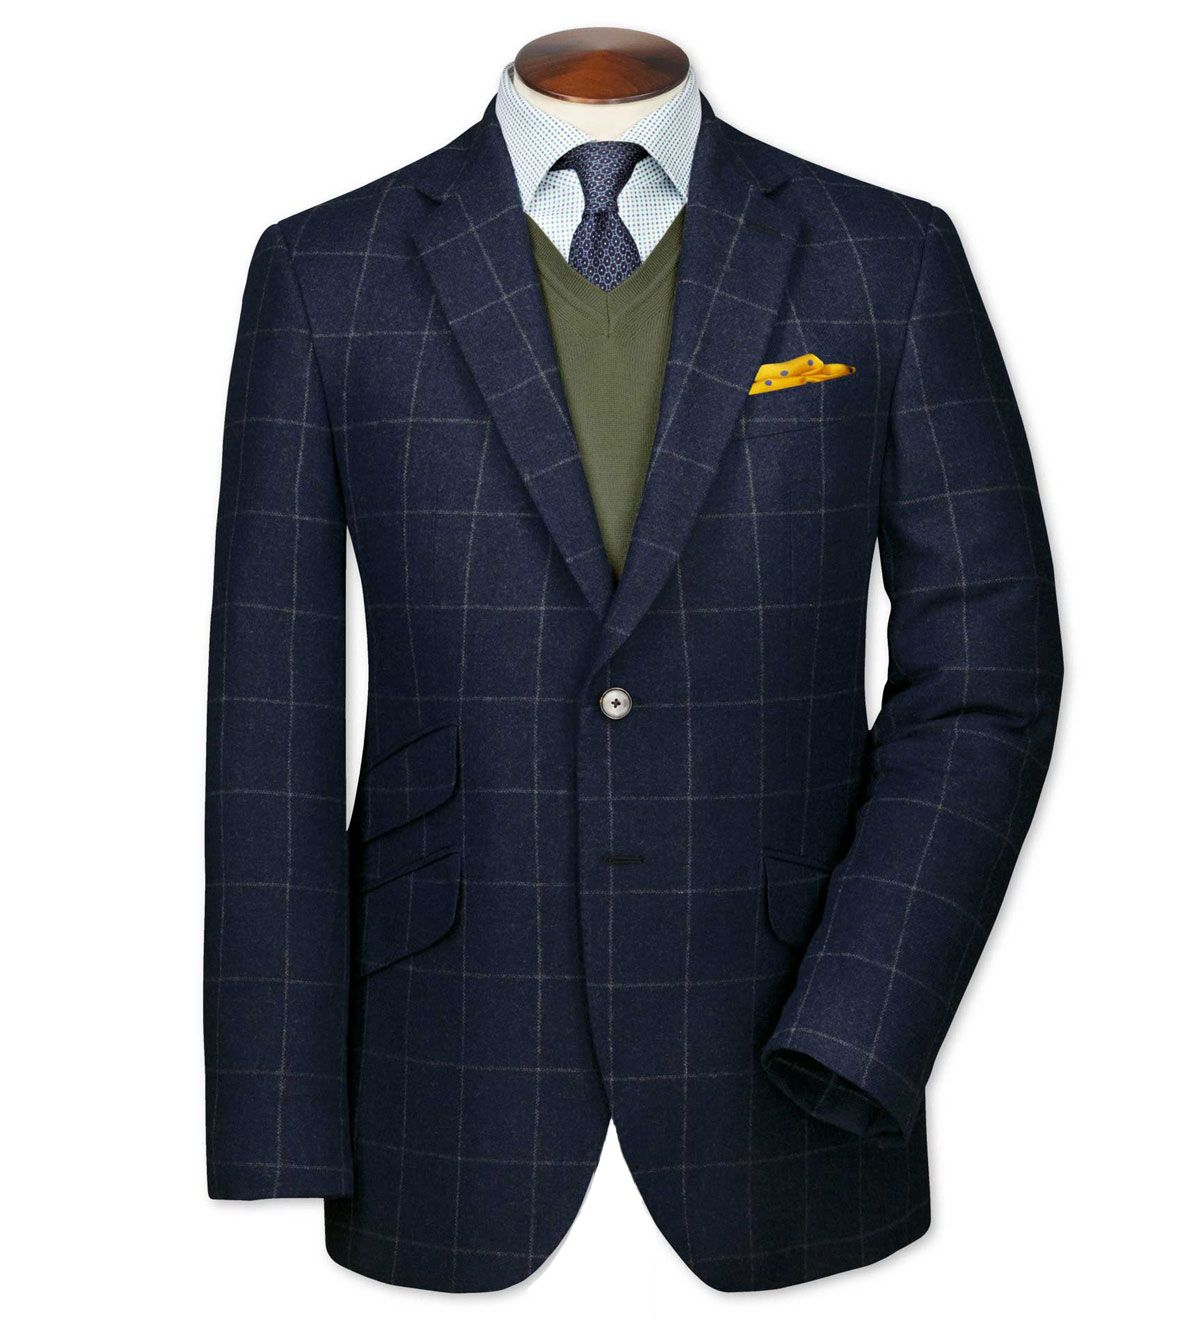 Men's Suits & Shirts